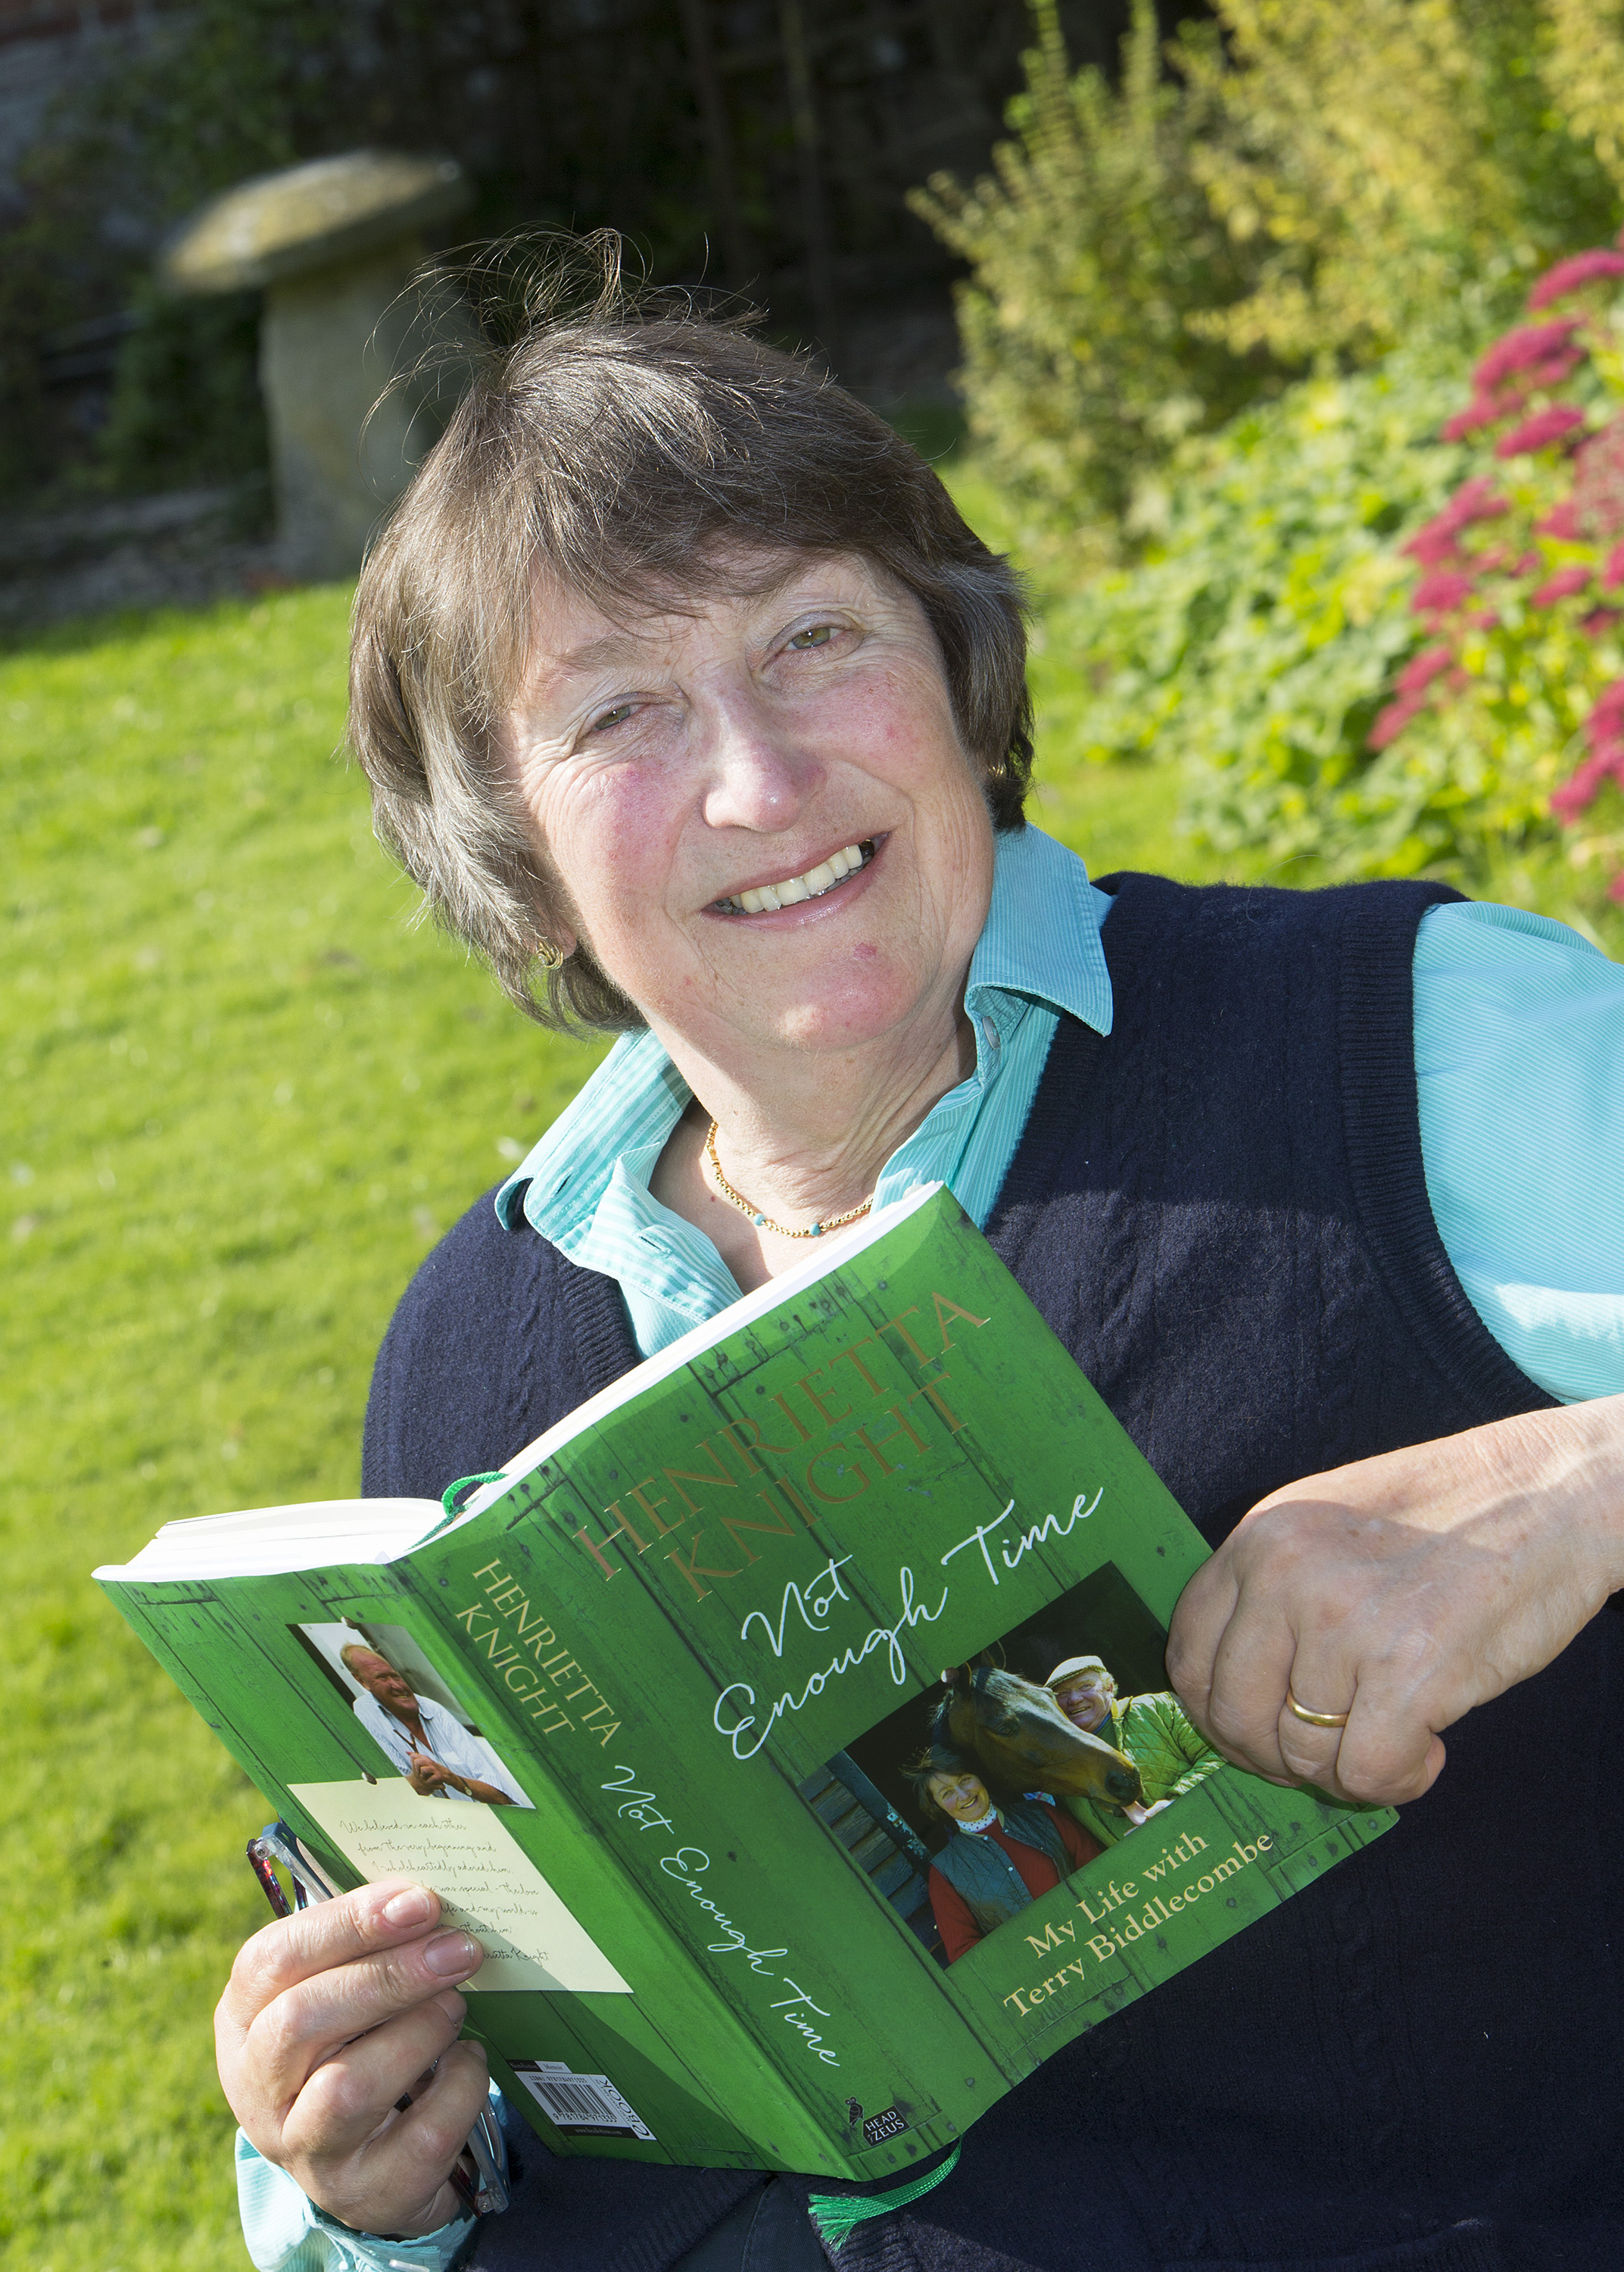 Henrietta Knight spent 10 months writing her new book on the years she spent with Terry Biddlecombe